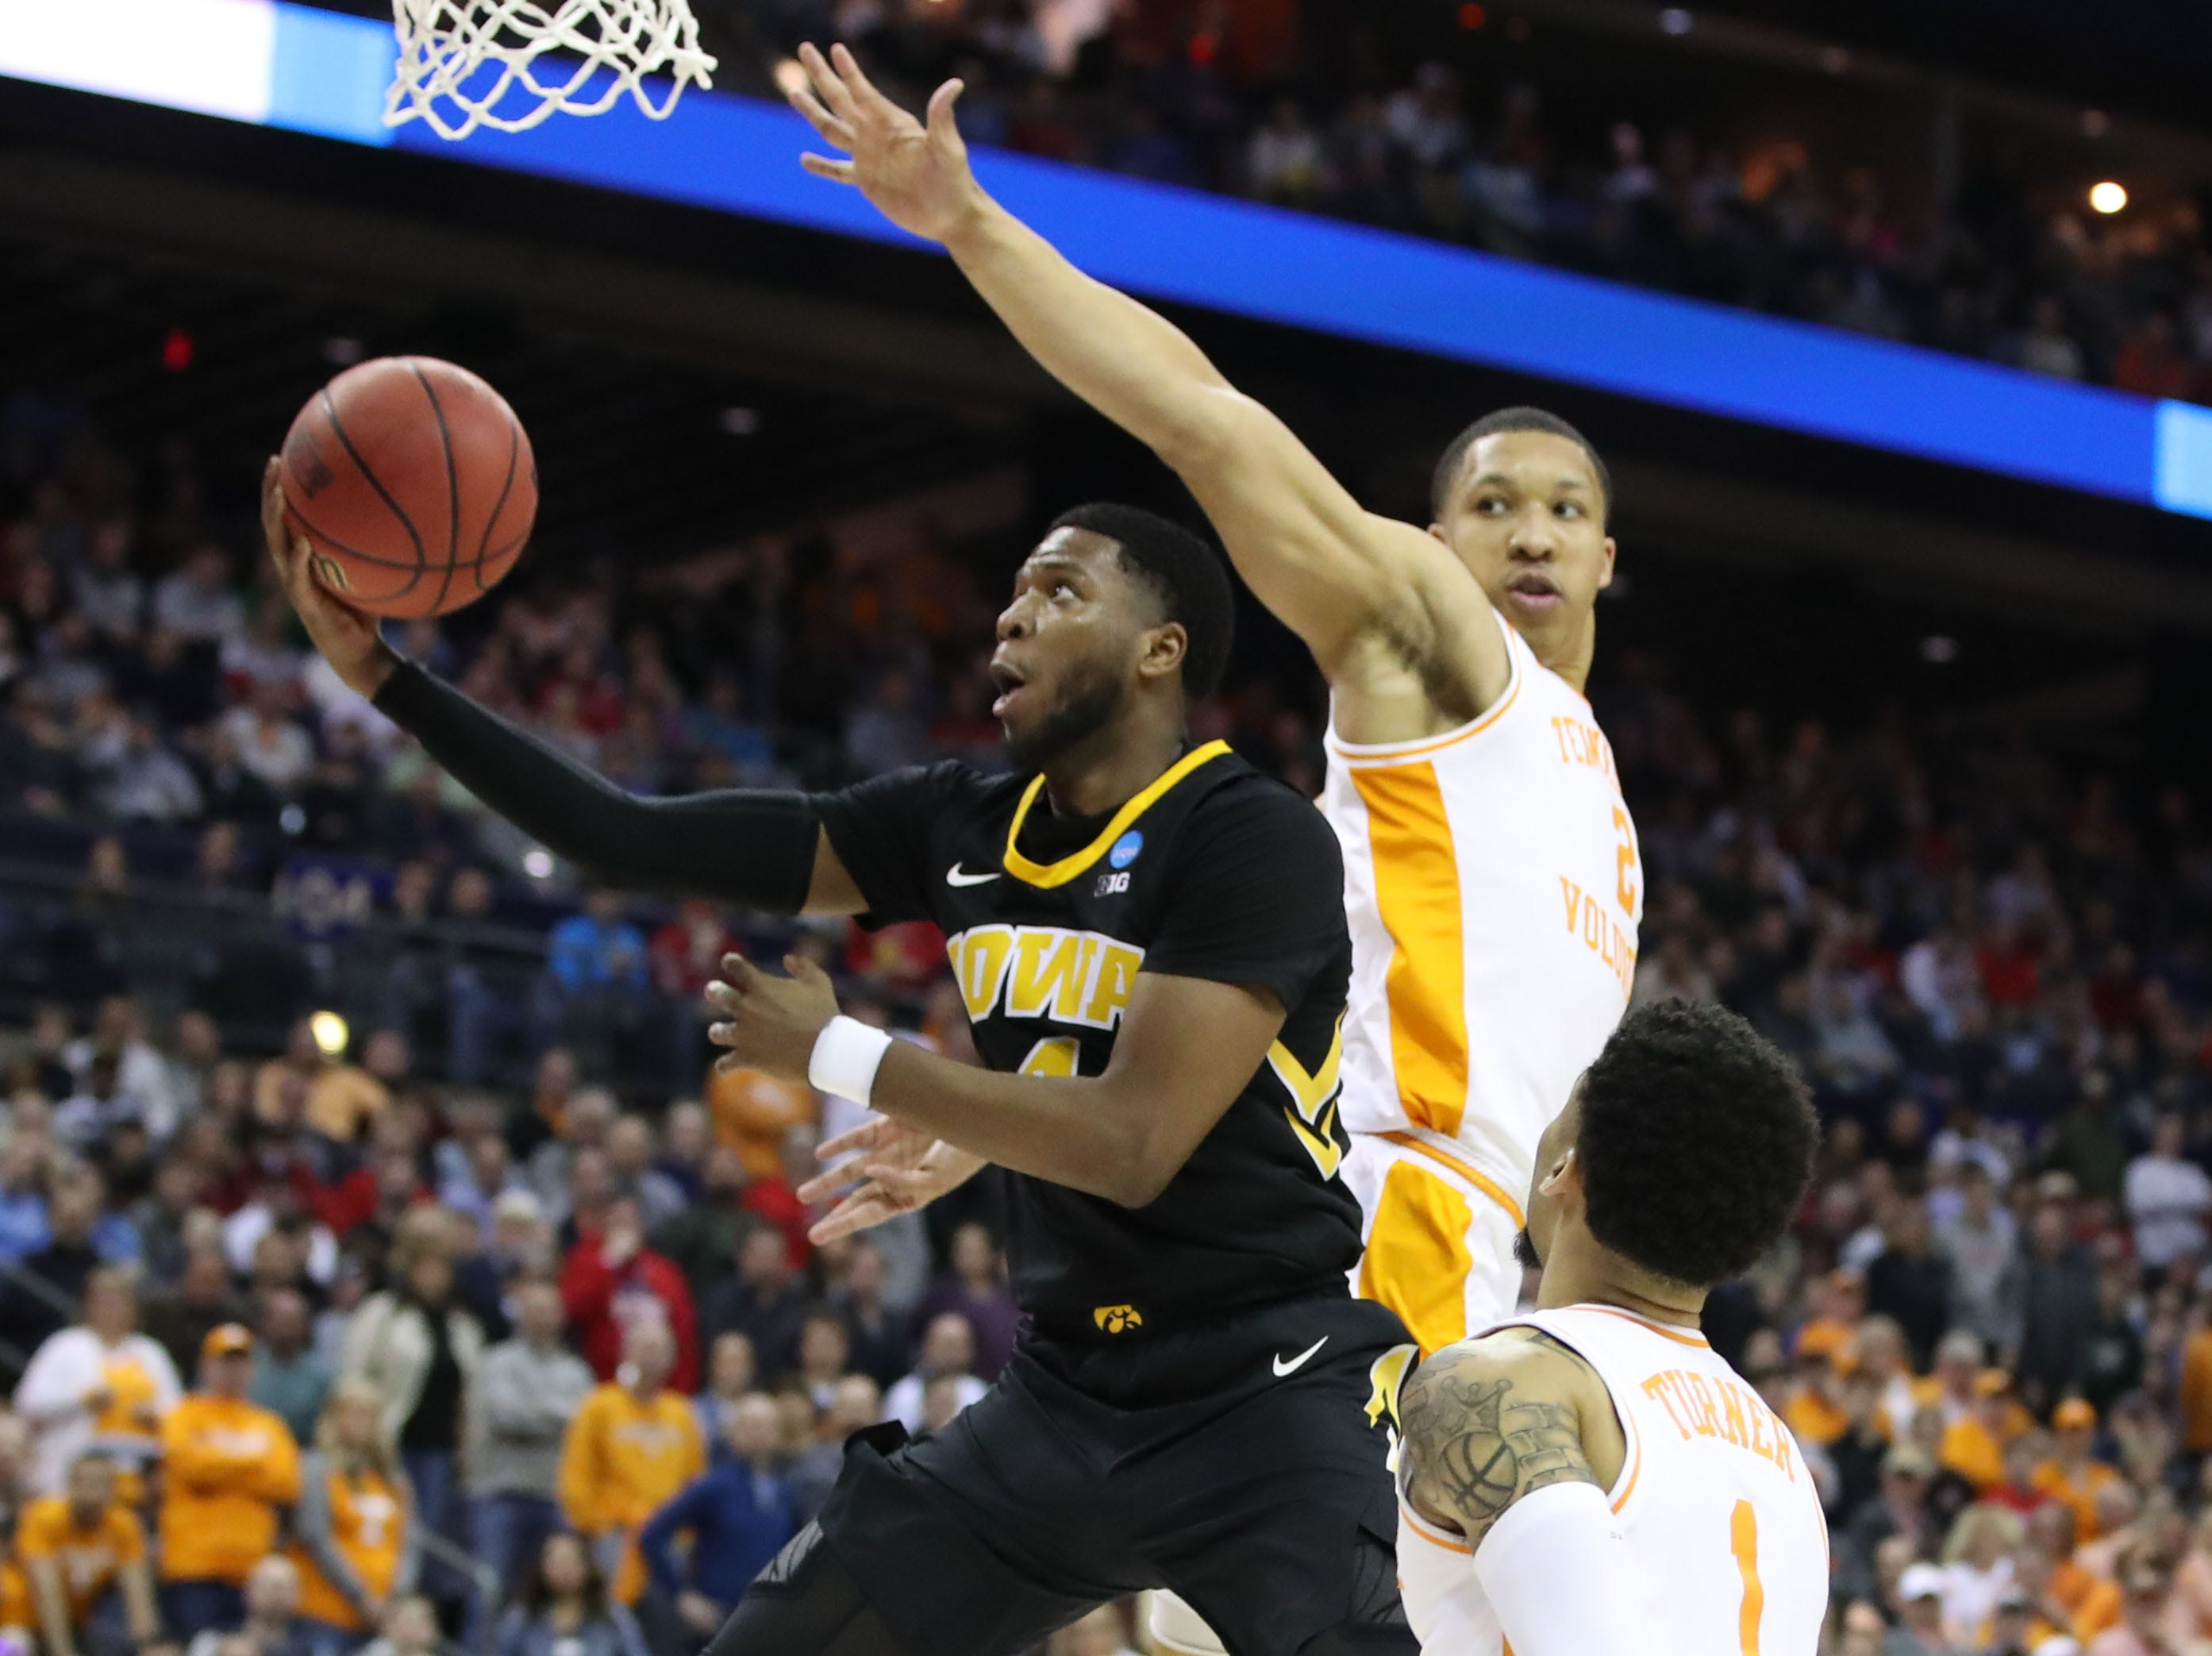 Iowa Hawkeyes guard Isaiah Moss (4) goes to the basket defended by Tennessee Volunteers forward Grant Williams (2) in the second half in the second round of the 2019 NCAA Tournament at Nationwide Arena.